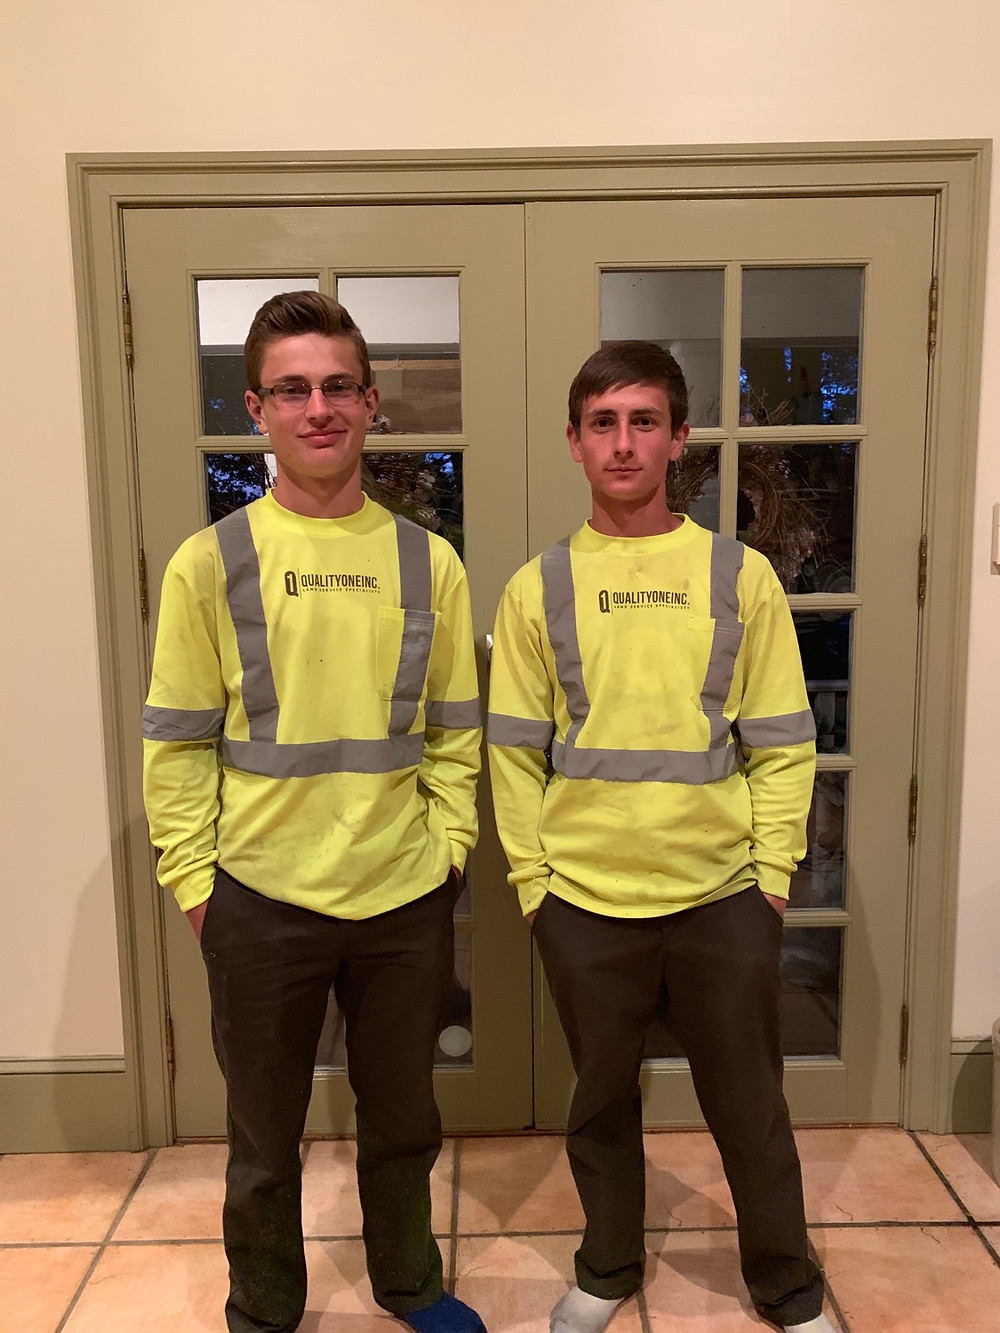 teens in work uniforms for lawn care business